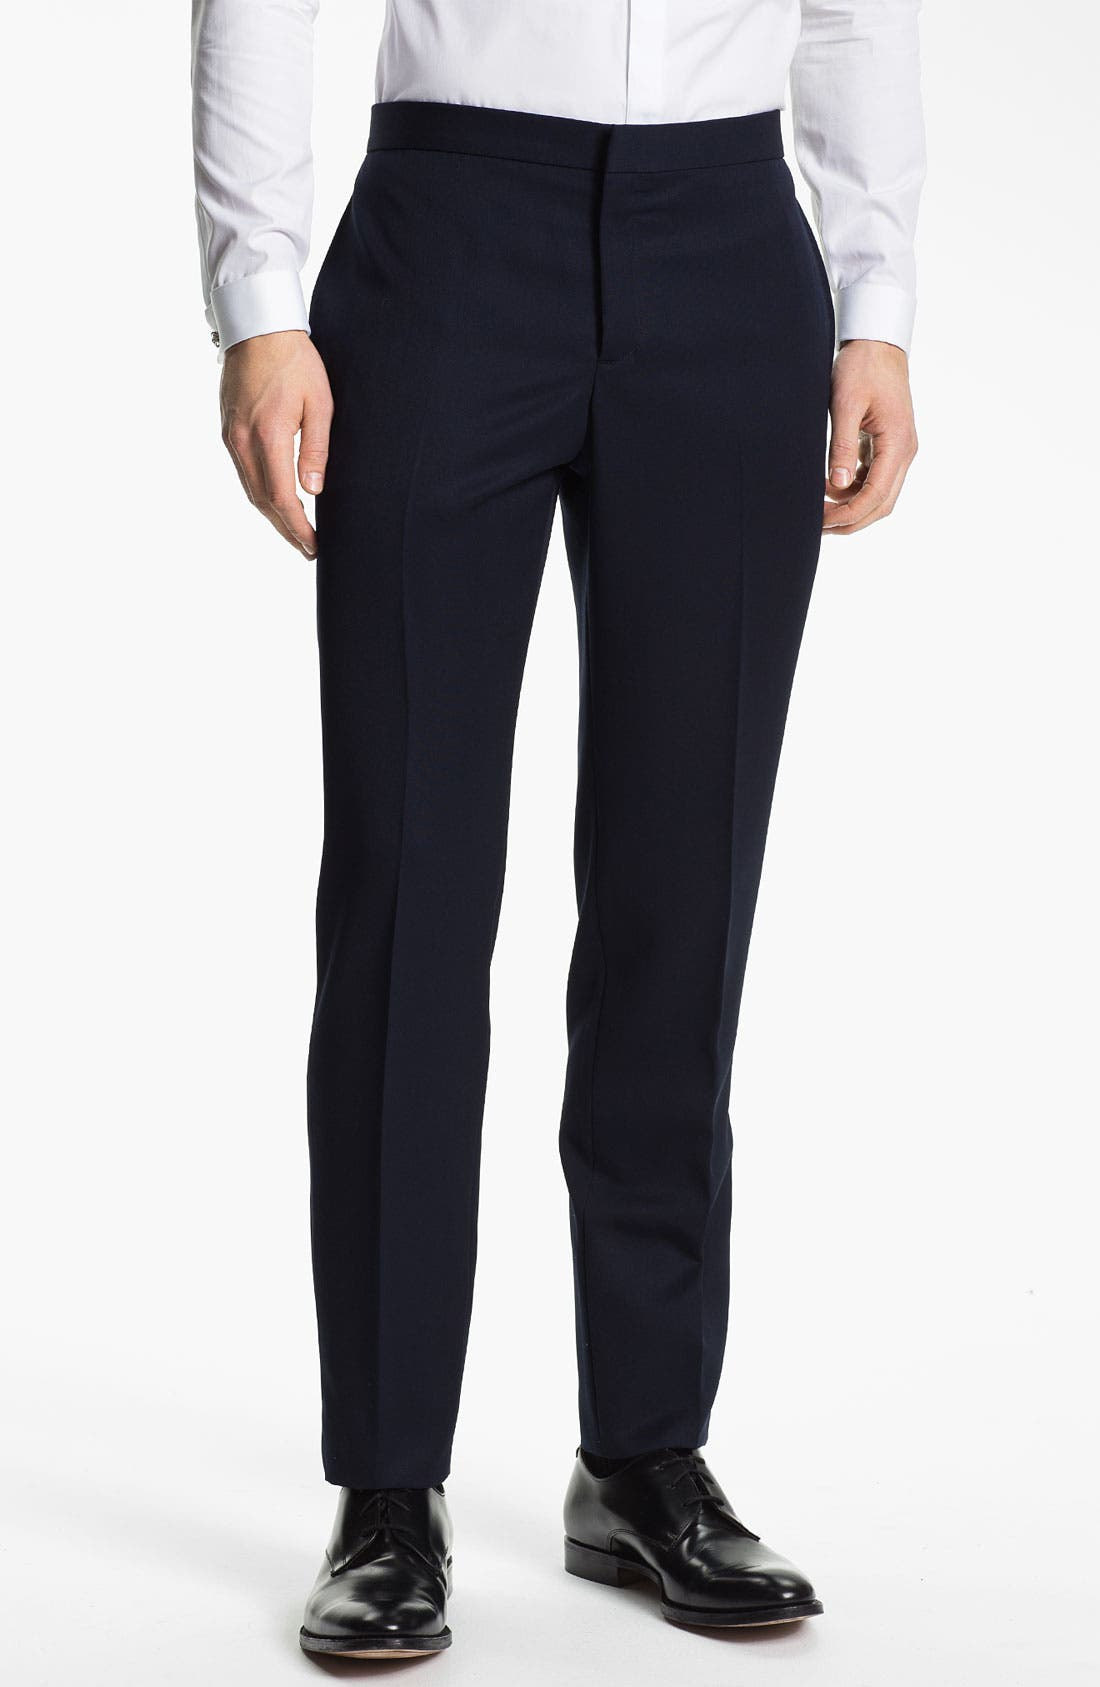 Alternate Image 1 Selected - Burberry Prorsum Wool Tuxedo Pants